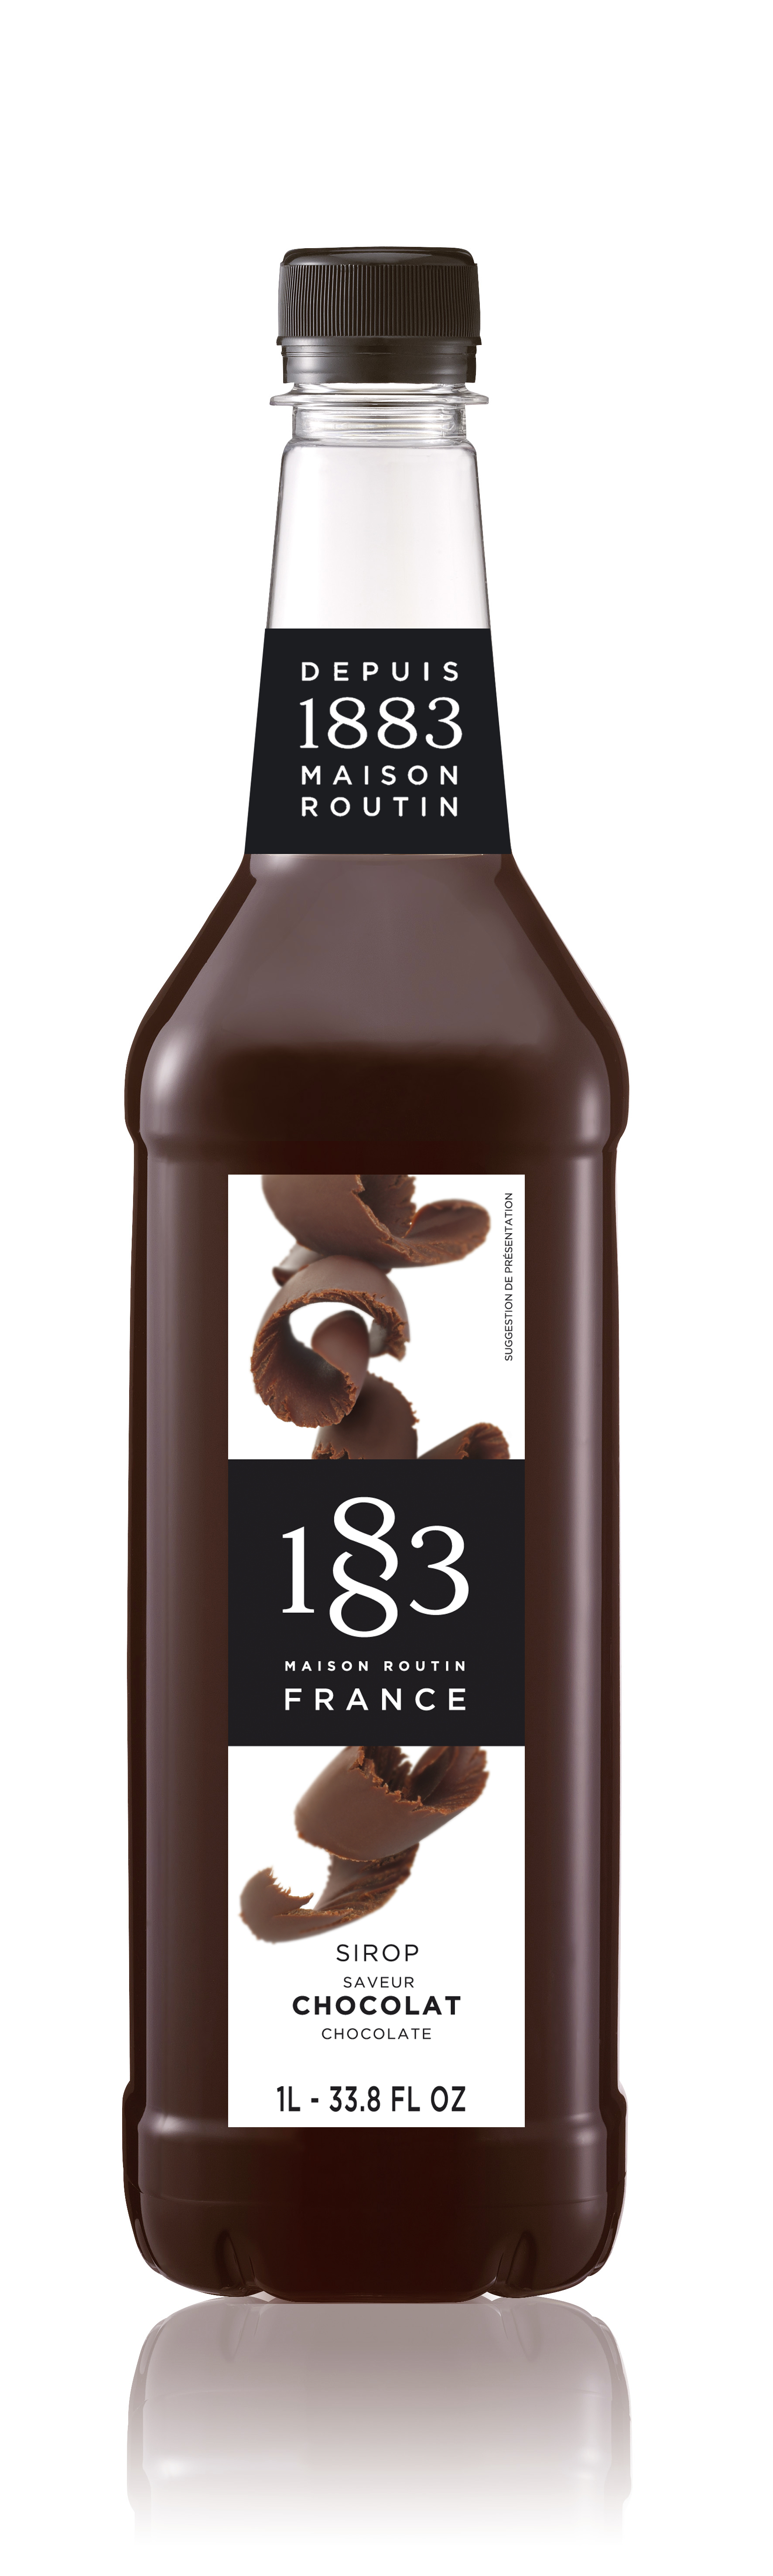 1883 Syrup Chocolate 1L PET Plastic Bottle